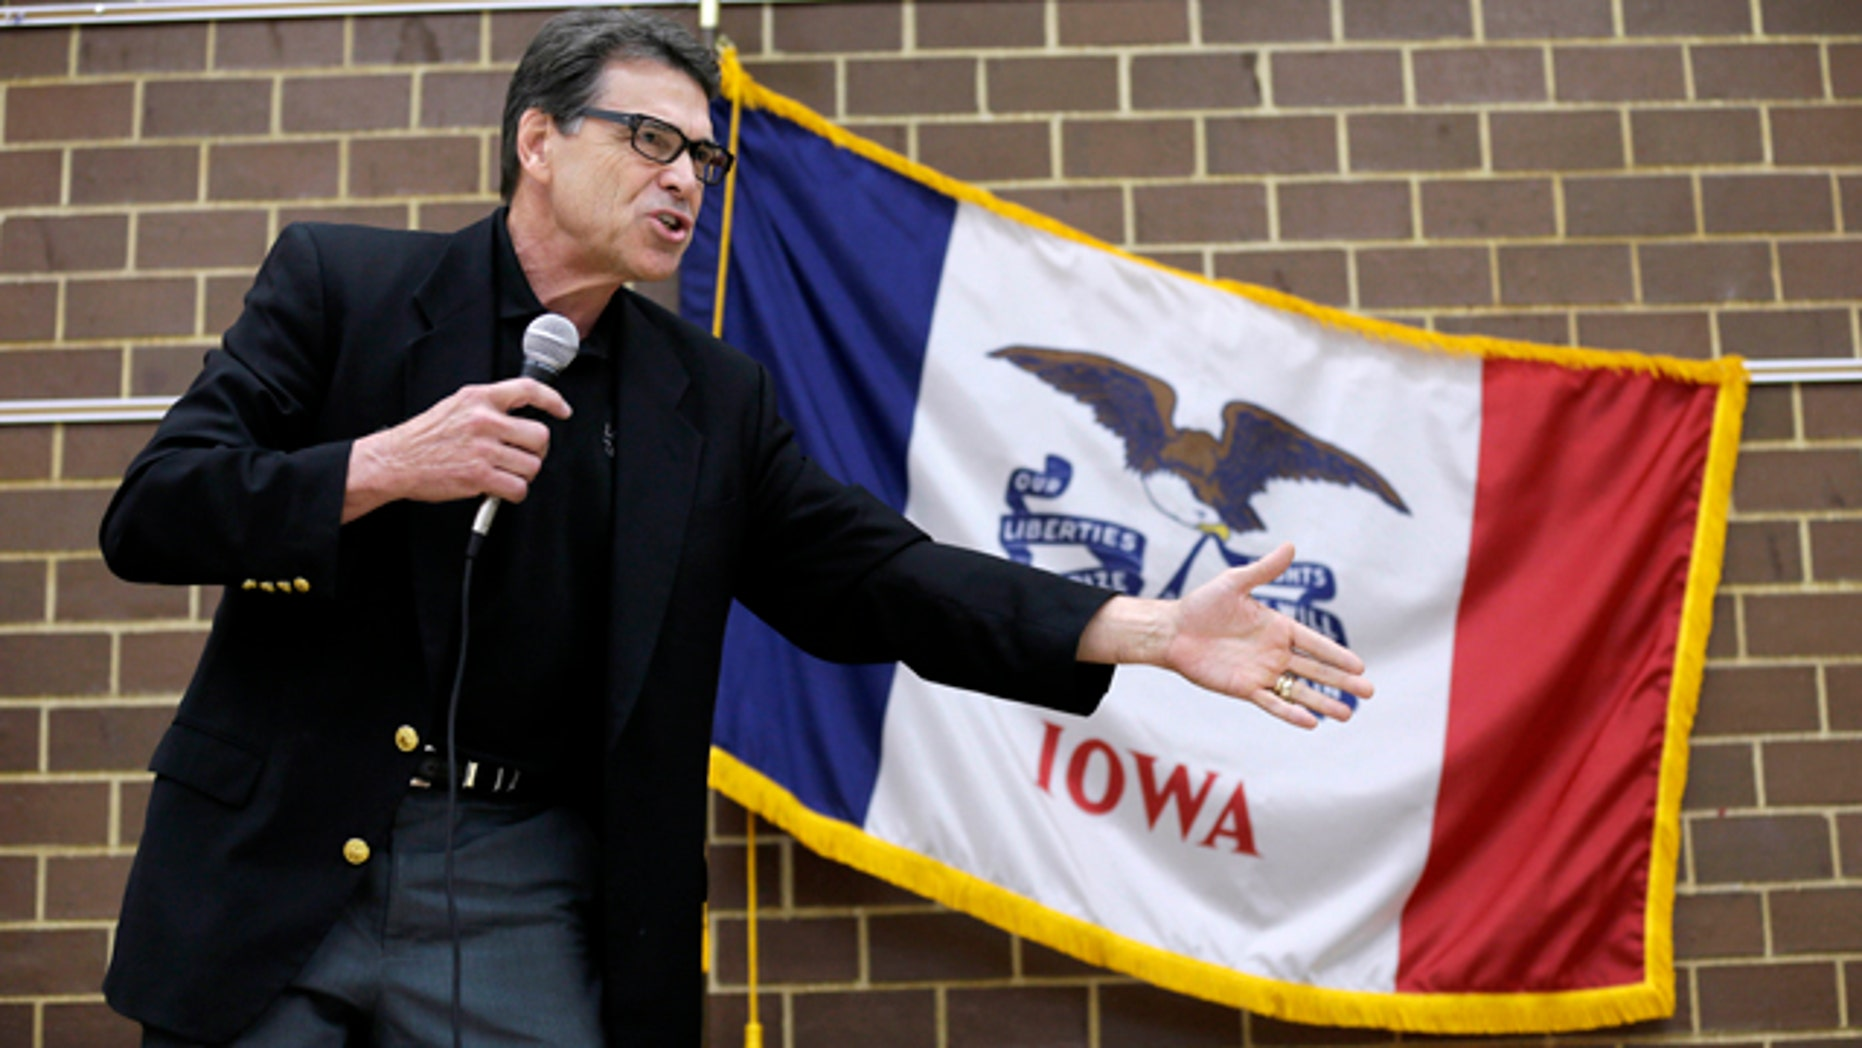 July 19, 2014: Texas Gov. Rick Perry speaks to local party activists in Algona, Iowa. (AP Photo/Charlie Neibergall)